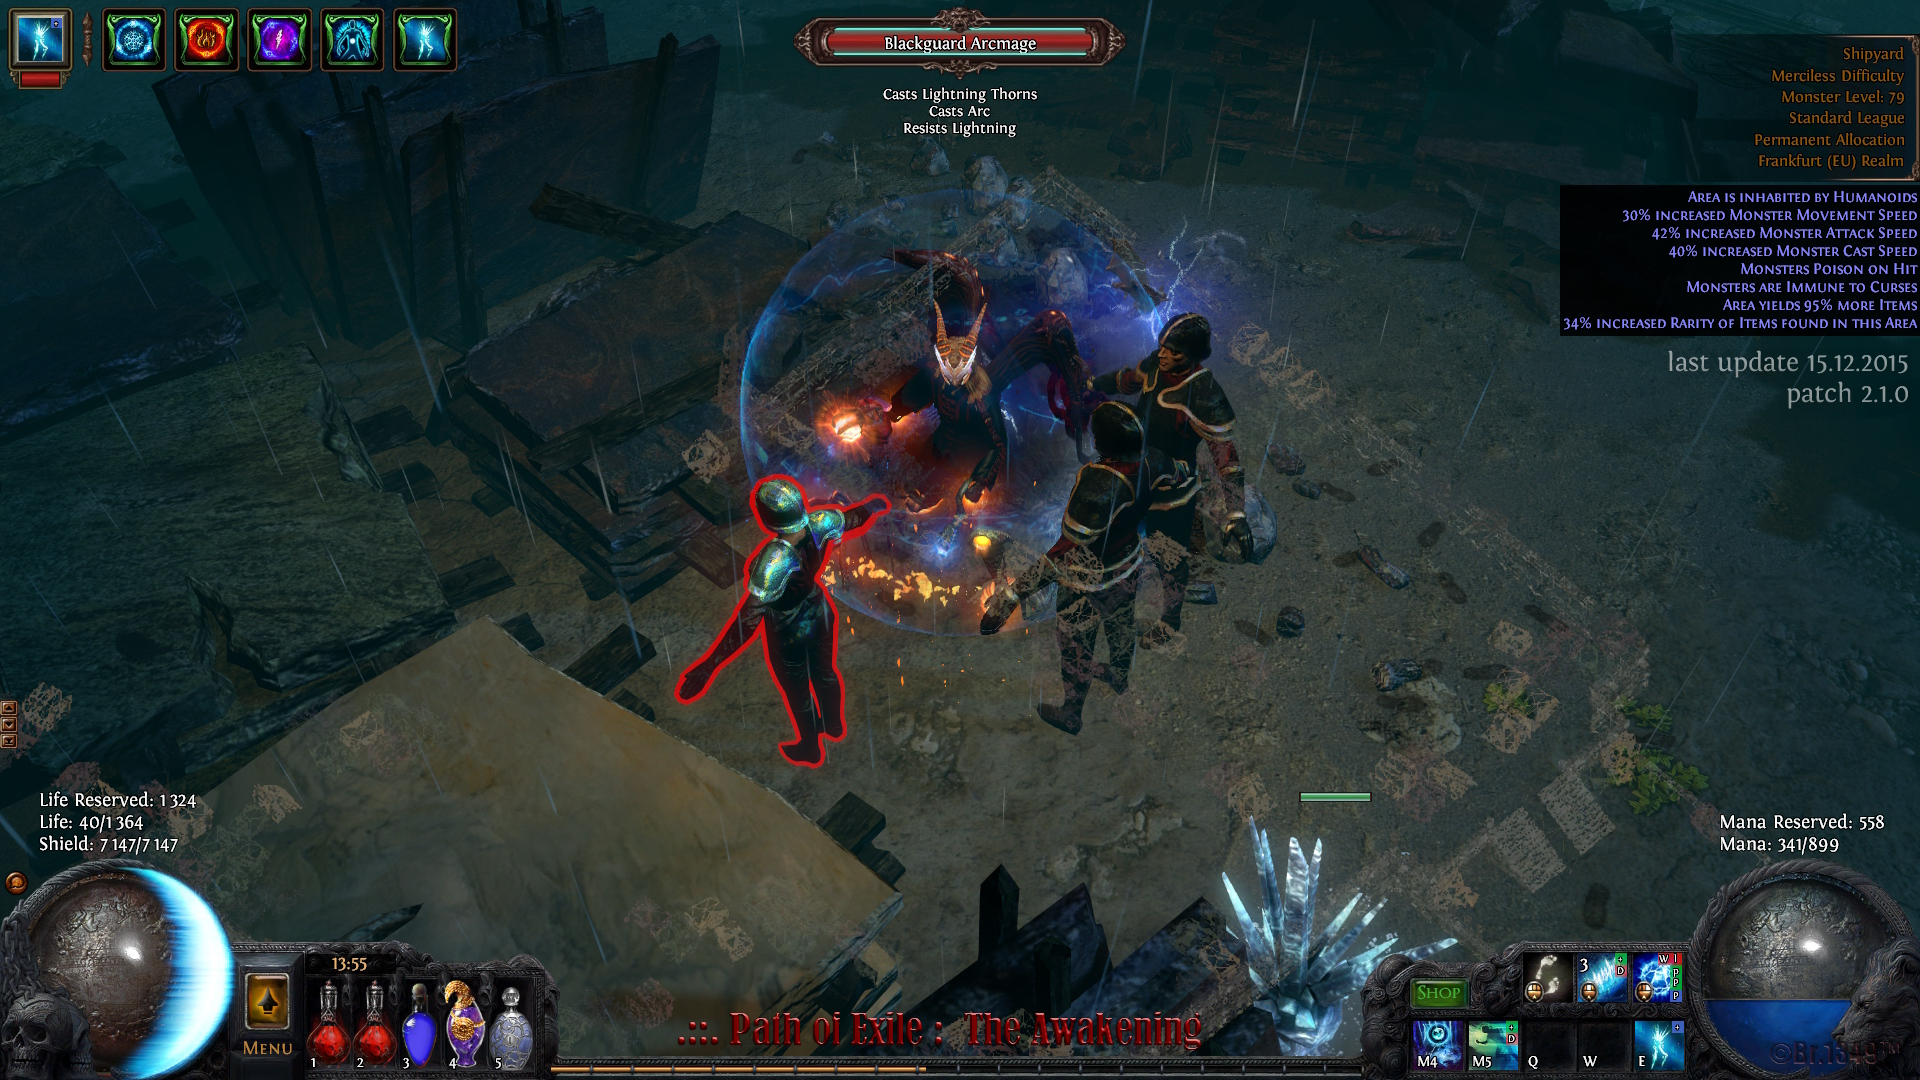 PathOfExile 2015-12-15 WTF freeze bug.jpg - Path of Exile